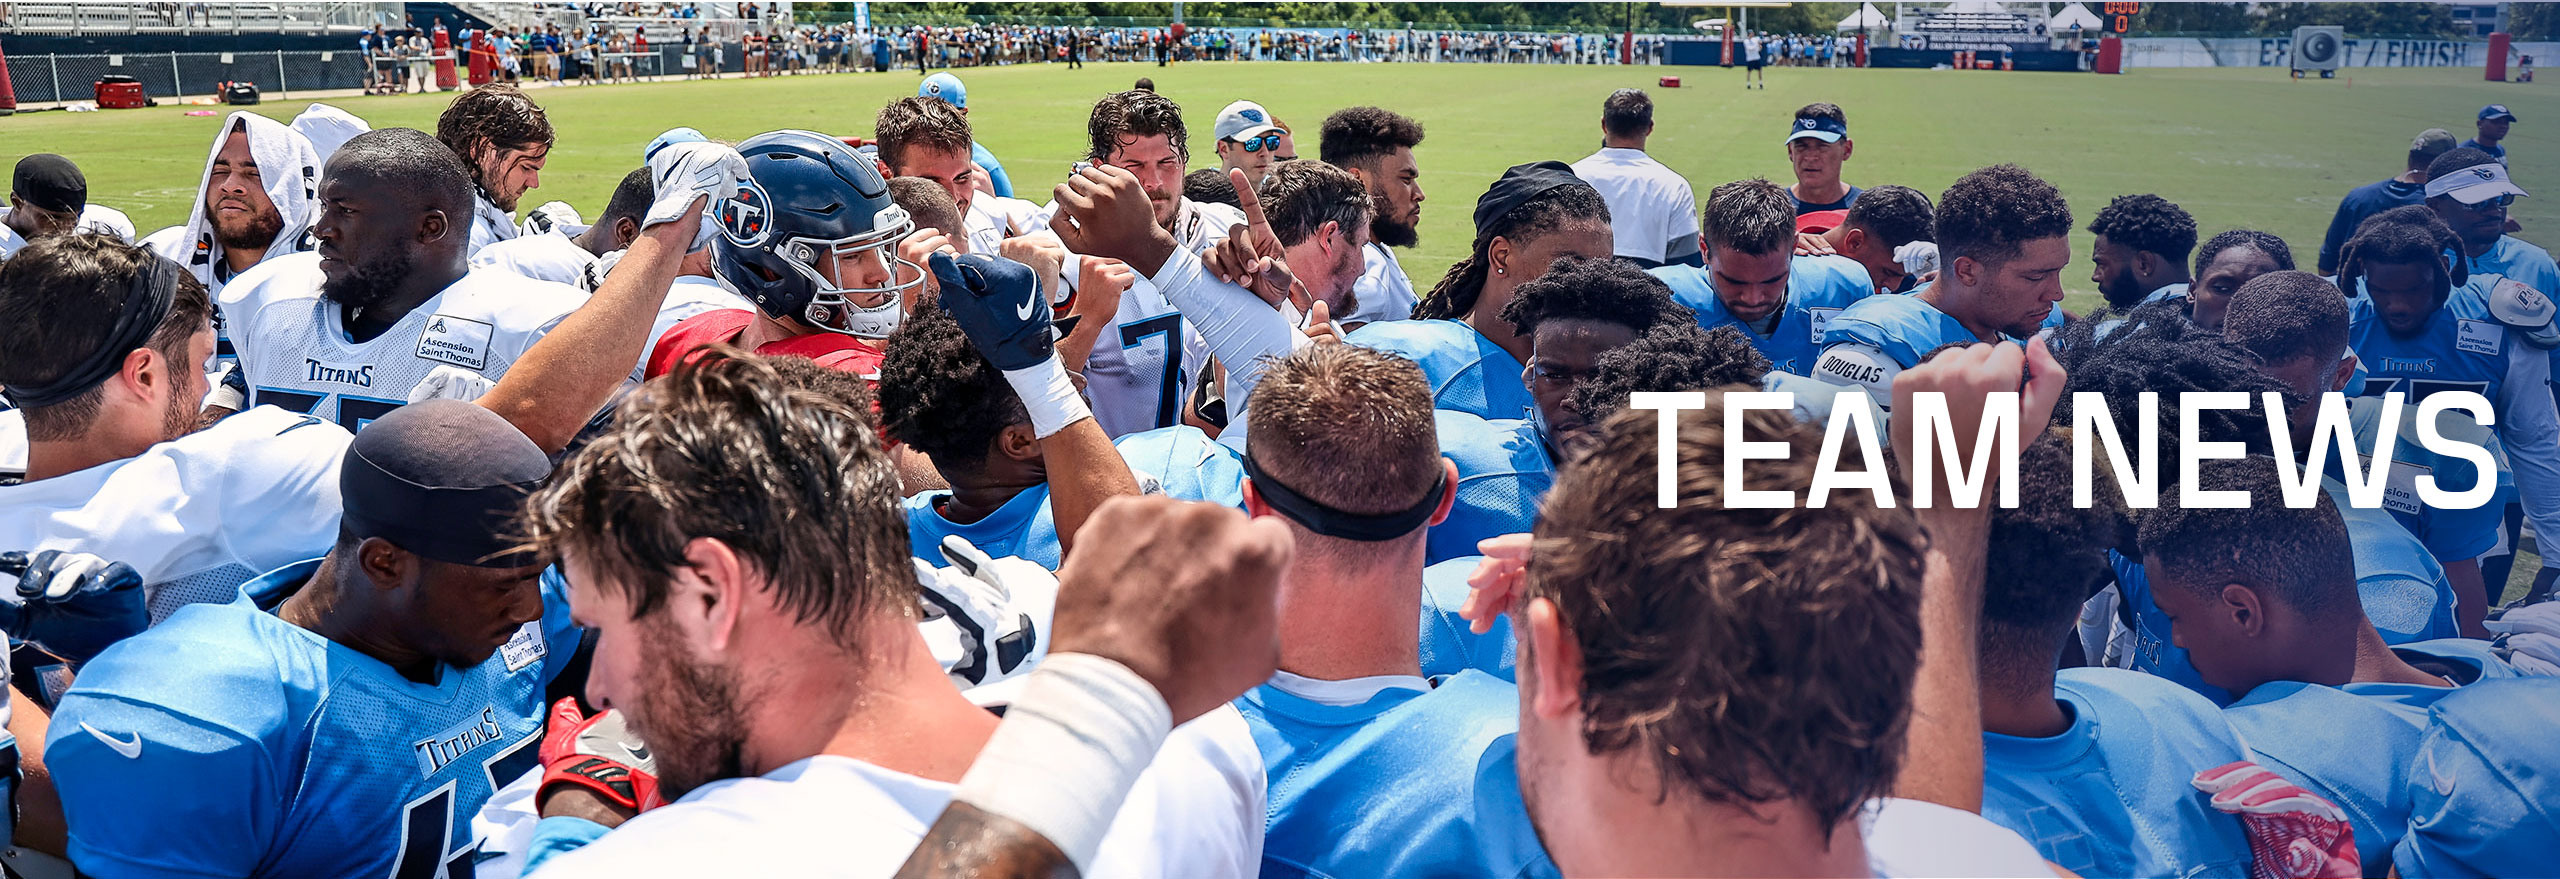 f9b3fd0b The Official Site of the Tennessee Titans